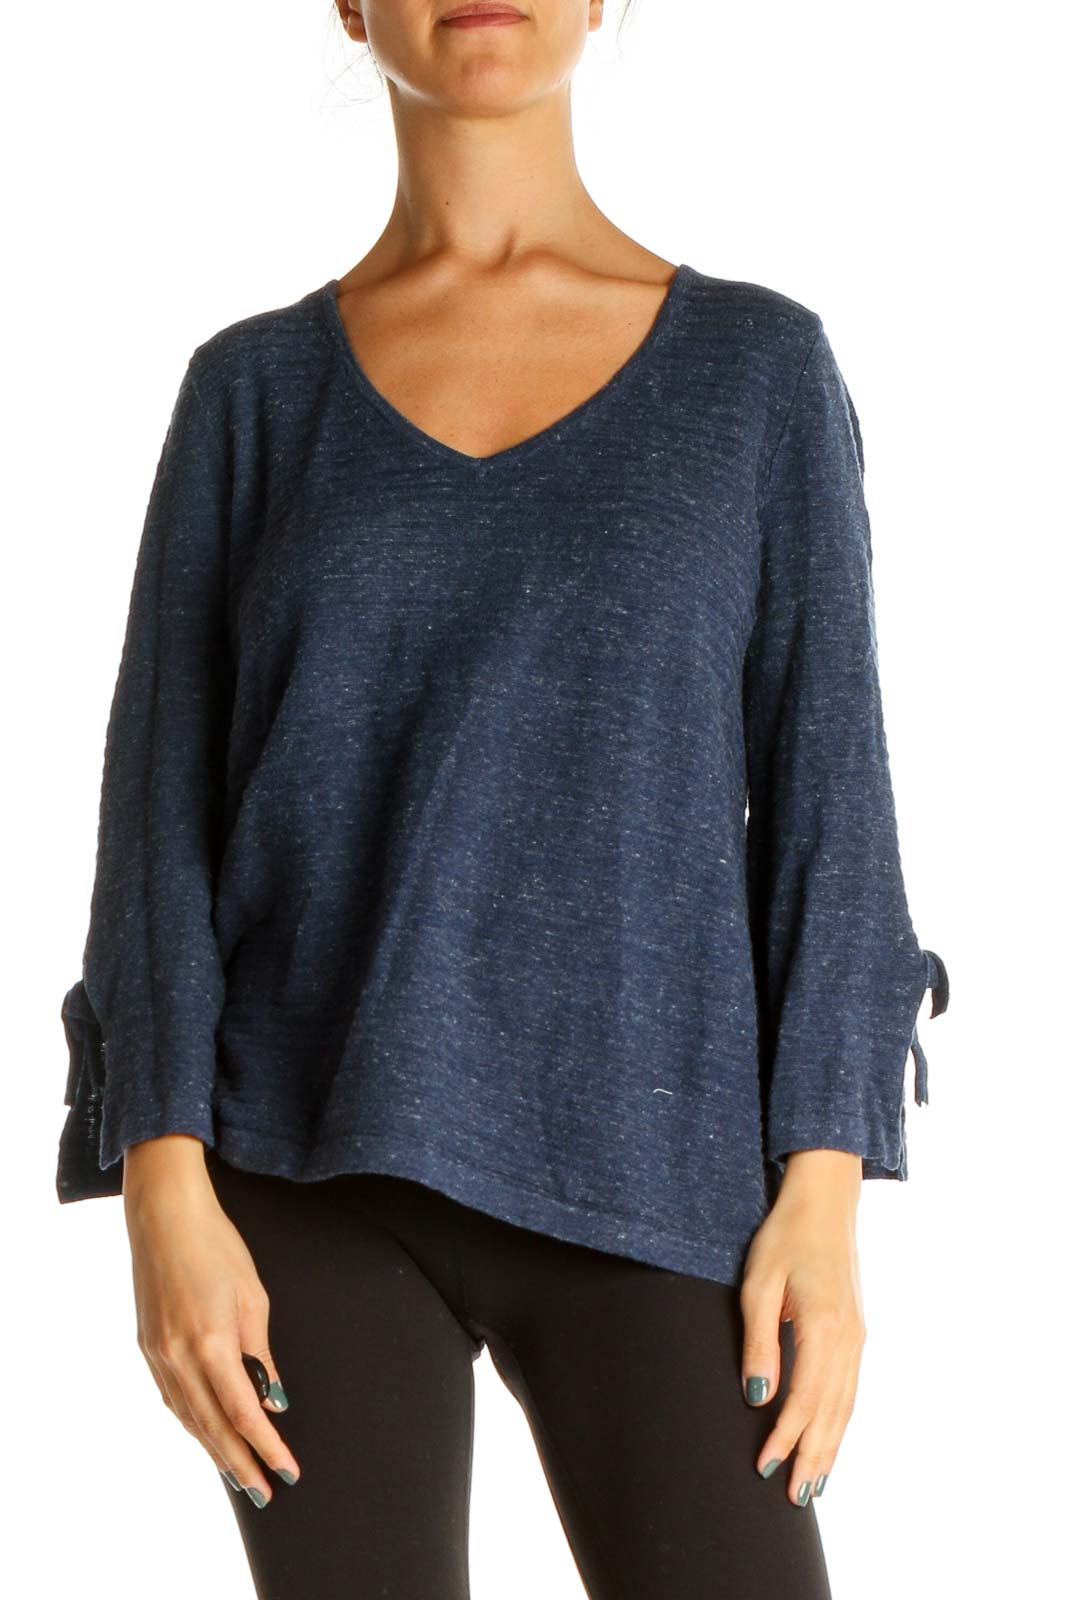 Black Textured Casual Shirt Front